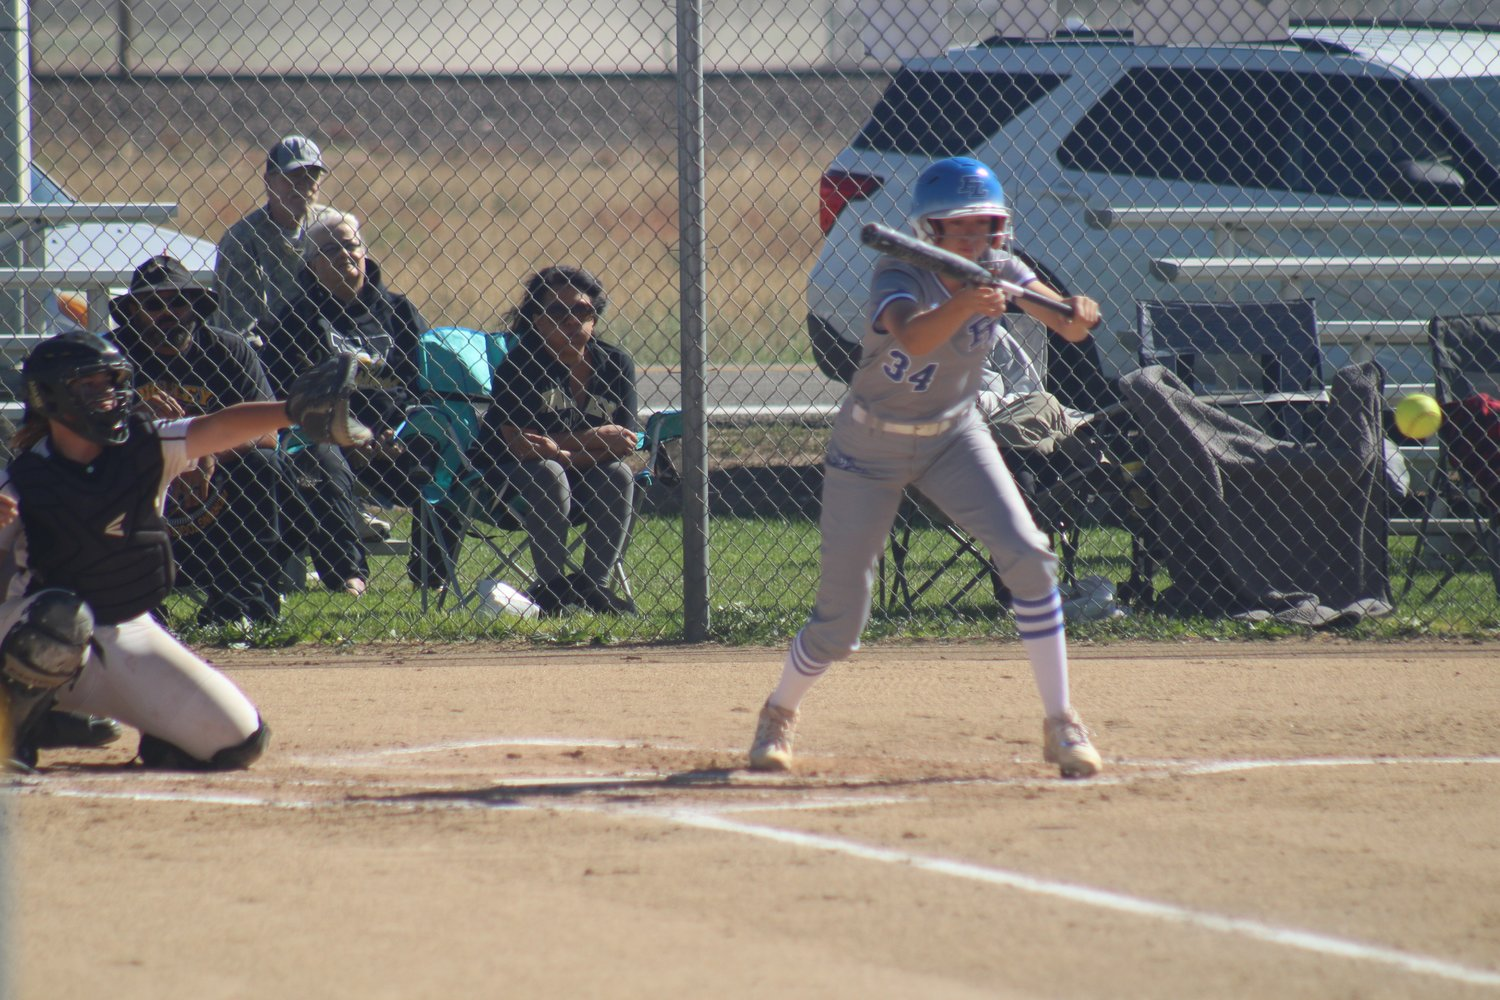 Fort Lupton's Taylor Fells lays down a bunt during the second inning of her team's regular-season finale against Valley High School Oct. 8 in Fort Lupton.